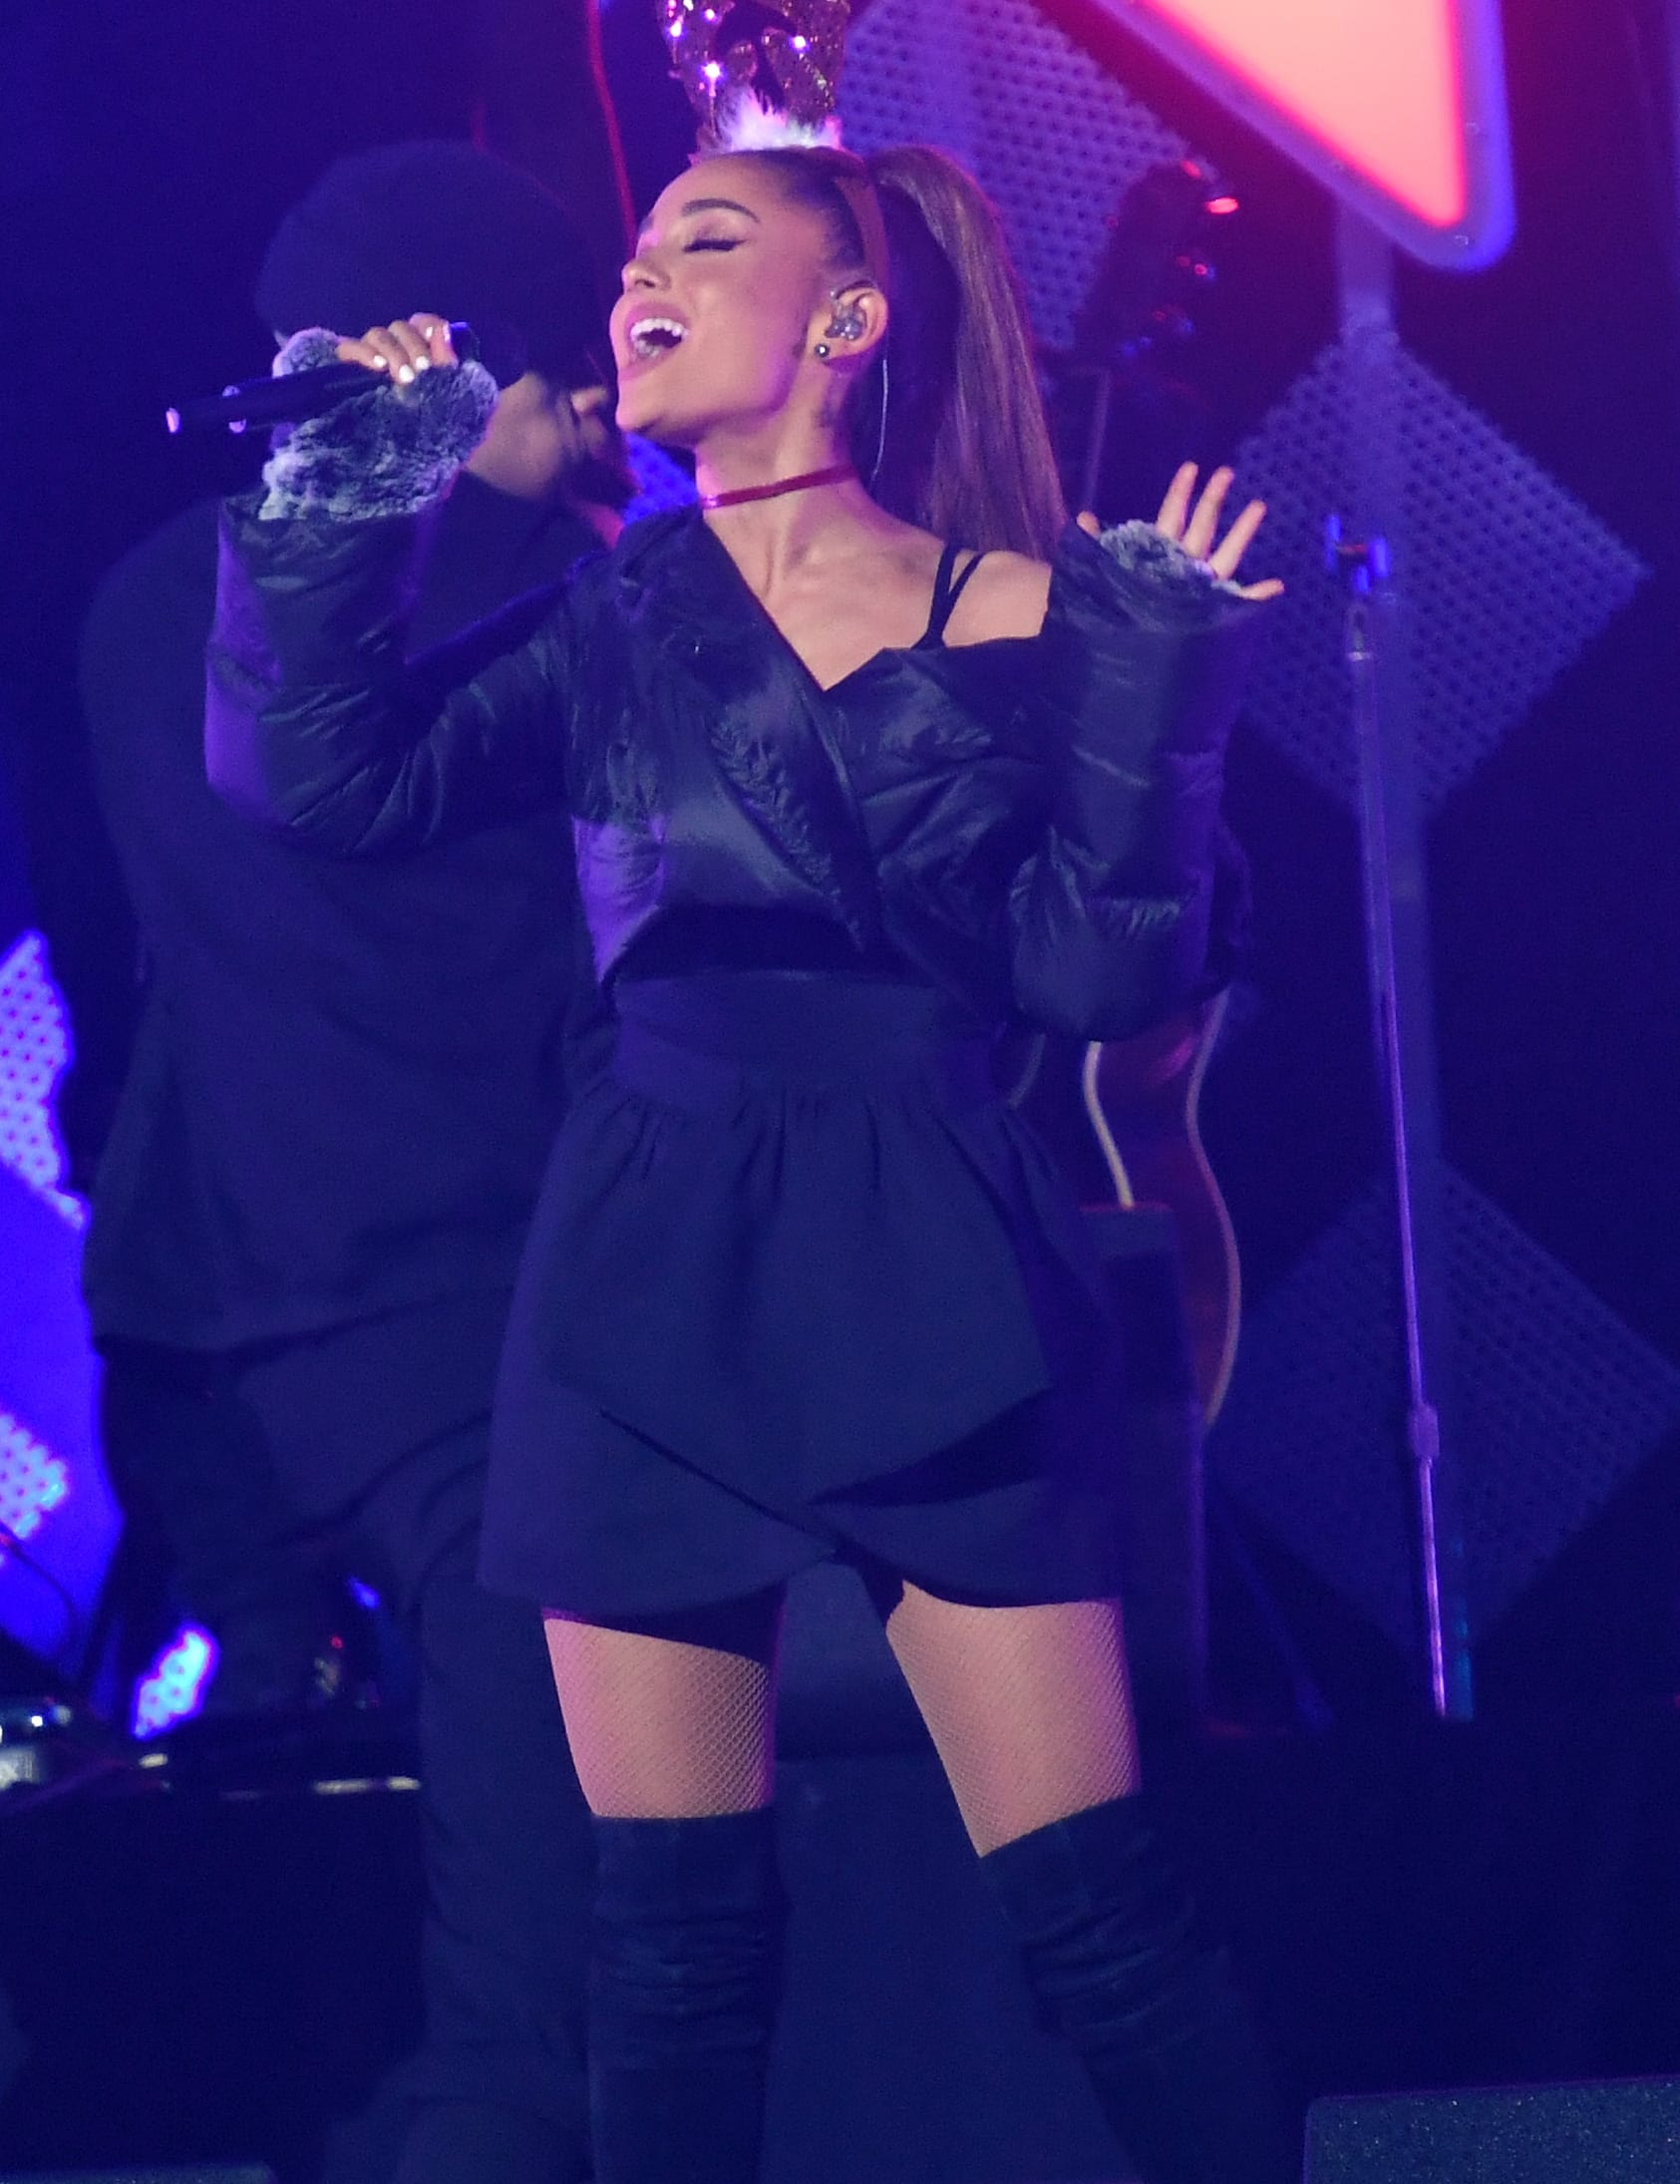 Ariana Grande Concert Rocked By Explosion At Least 22 Dead The